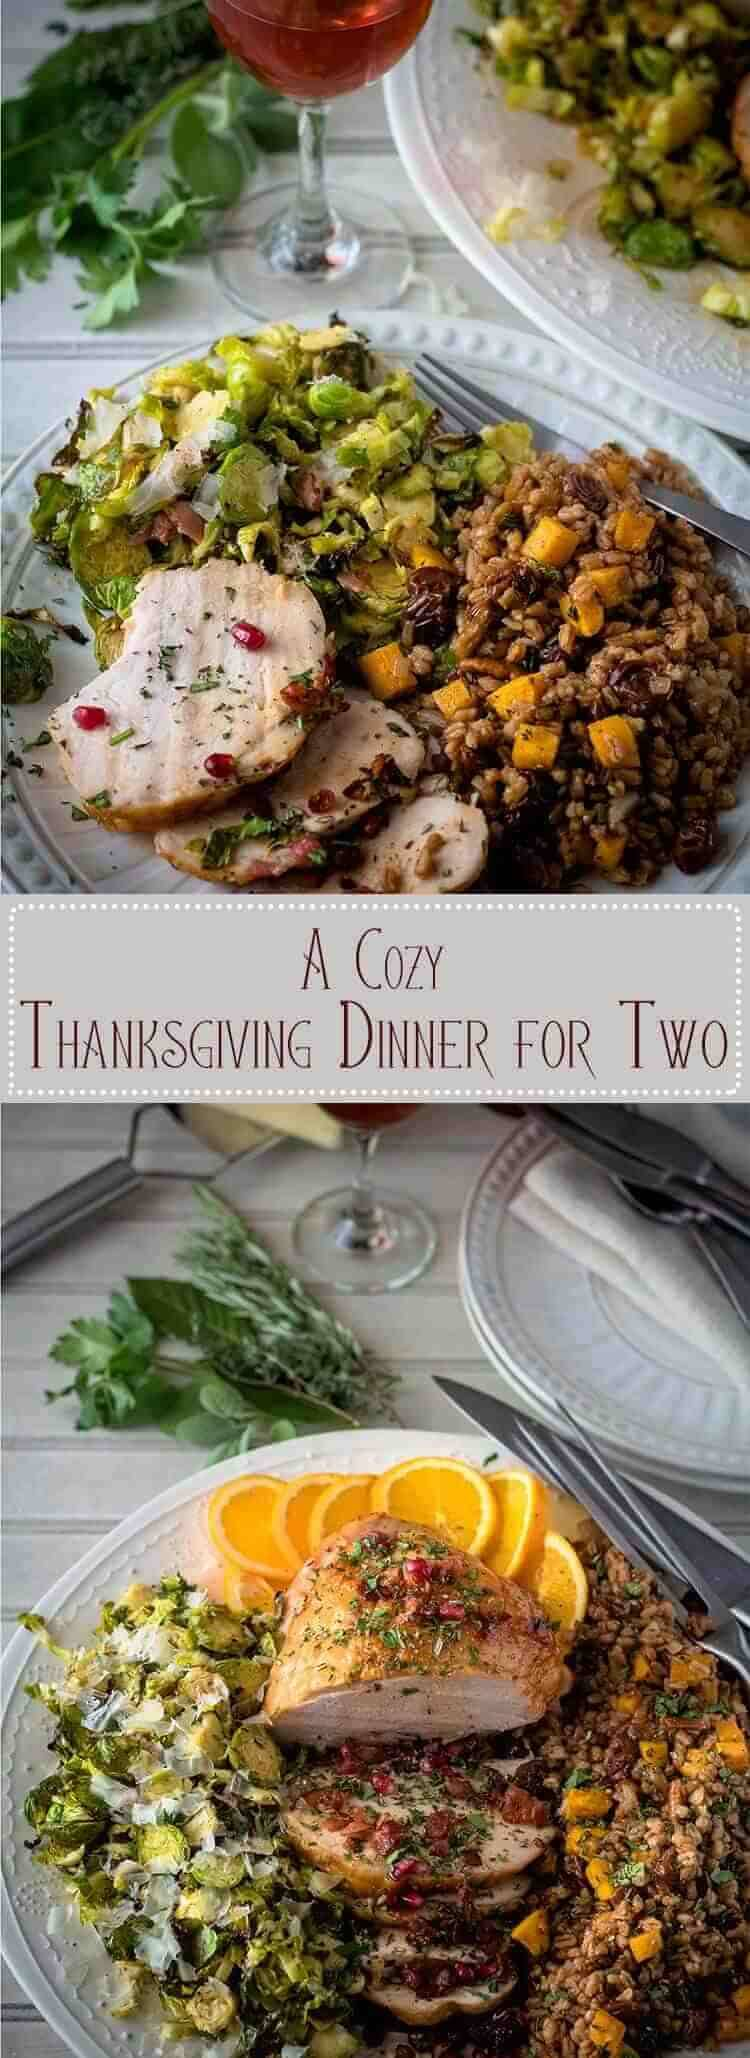 A Cozy Thanksgiving Dinner For Two is A lovely Citrus and Herb Roasted Turkey Breast accompanied by Shaved Roasted Brussels with Pecorino and Pancetta and Herbed Farro Dressing with Butternut Squash, Dried Cherries, and Pecans covers the flavors of the season with elegant flair! And it's healthy too! #Thanksgivingdinnerfortwo #healthyThanksgivingdishes #roastedturkeybreast #roastedbrusselssprouts #farrodressing #citrusbrine